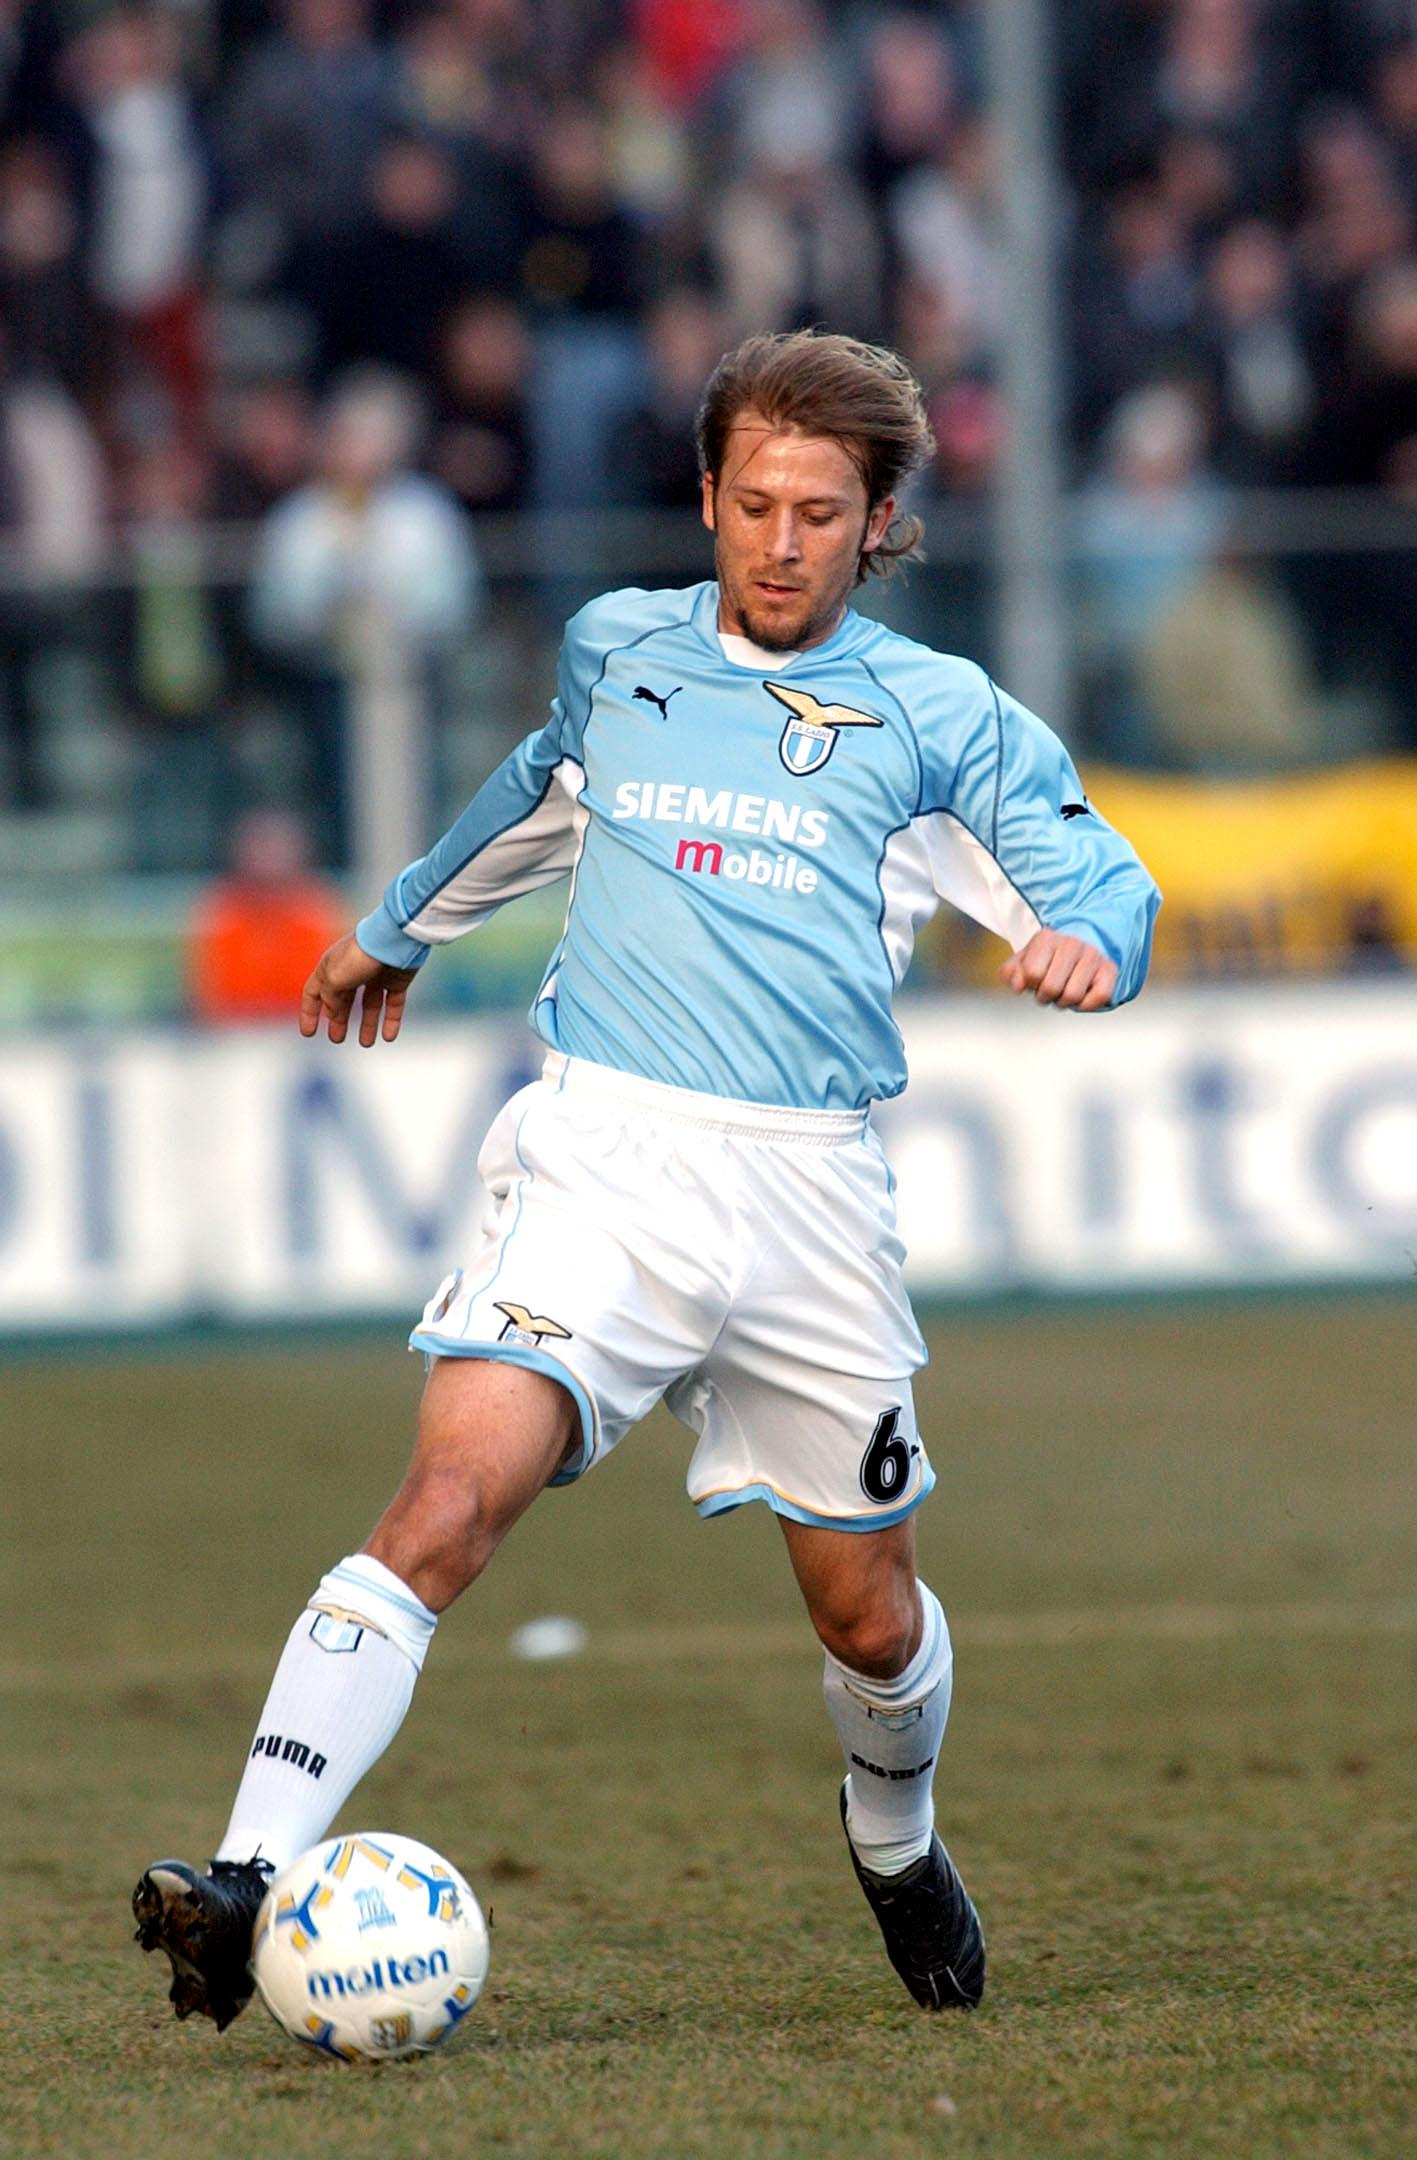 Mendieta became the sixth most expensive player in history when he signed for Lazio